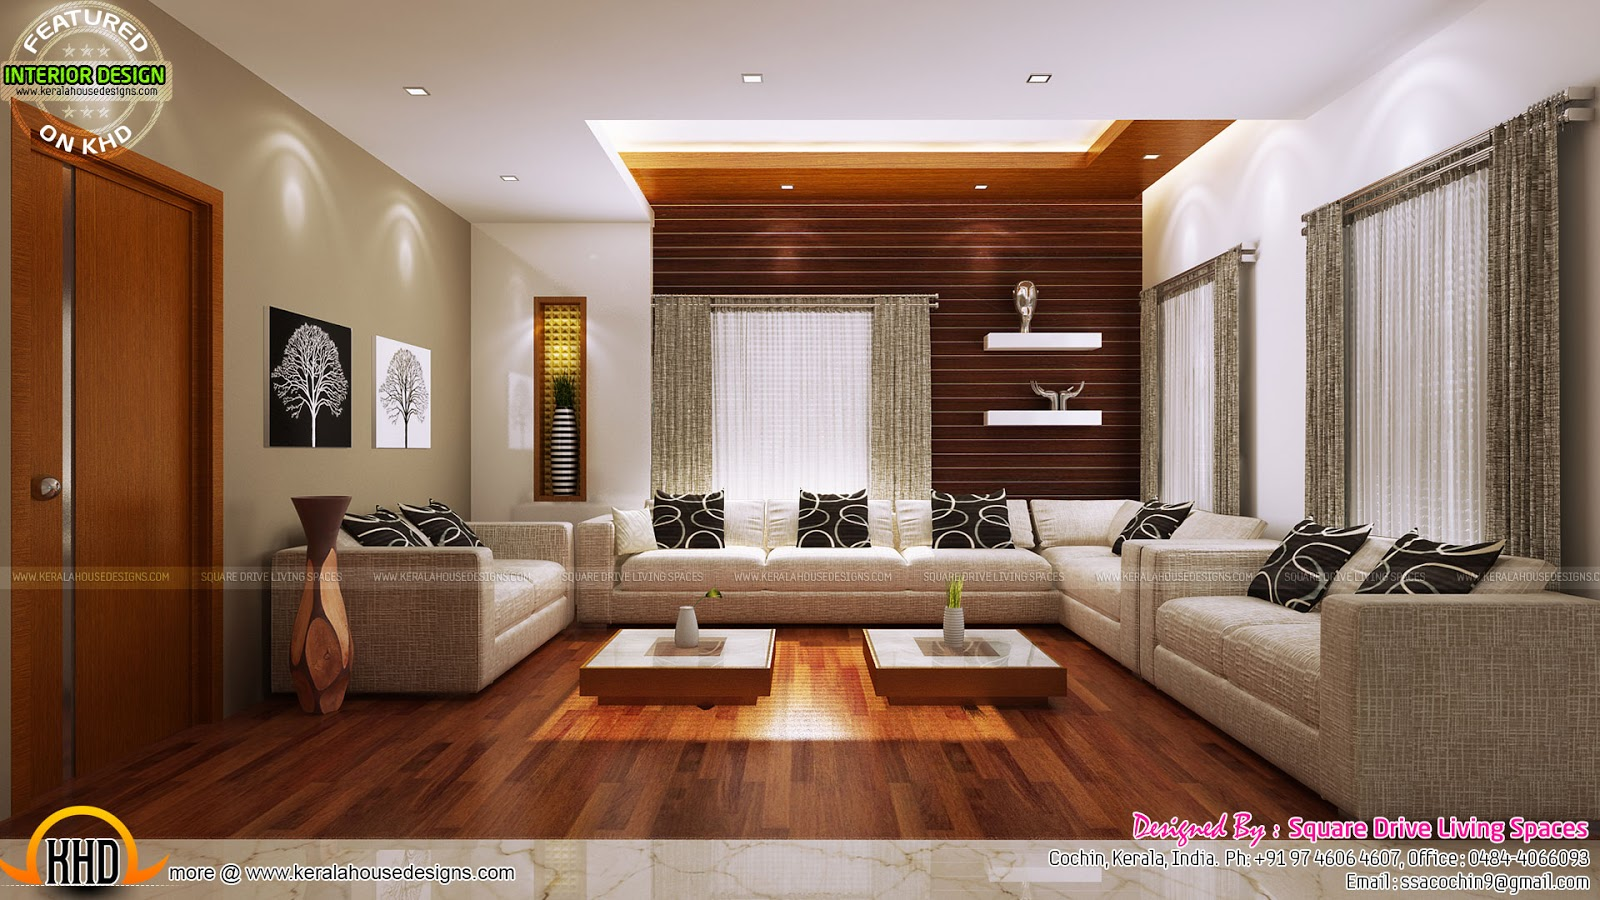 Excellent kerala interior design kerala home design and for Home inside decoration photos